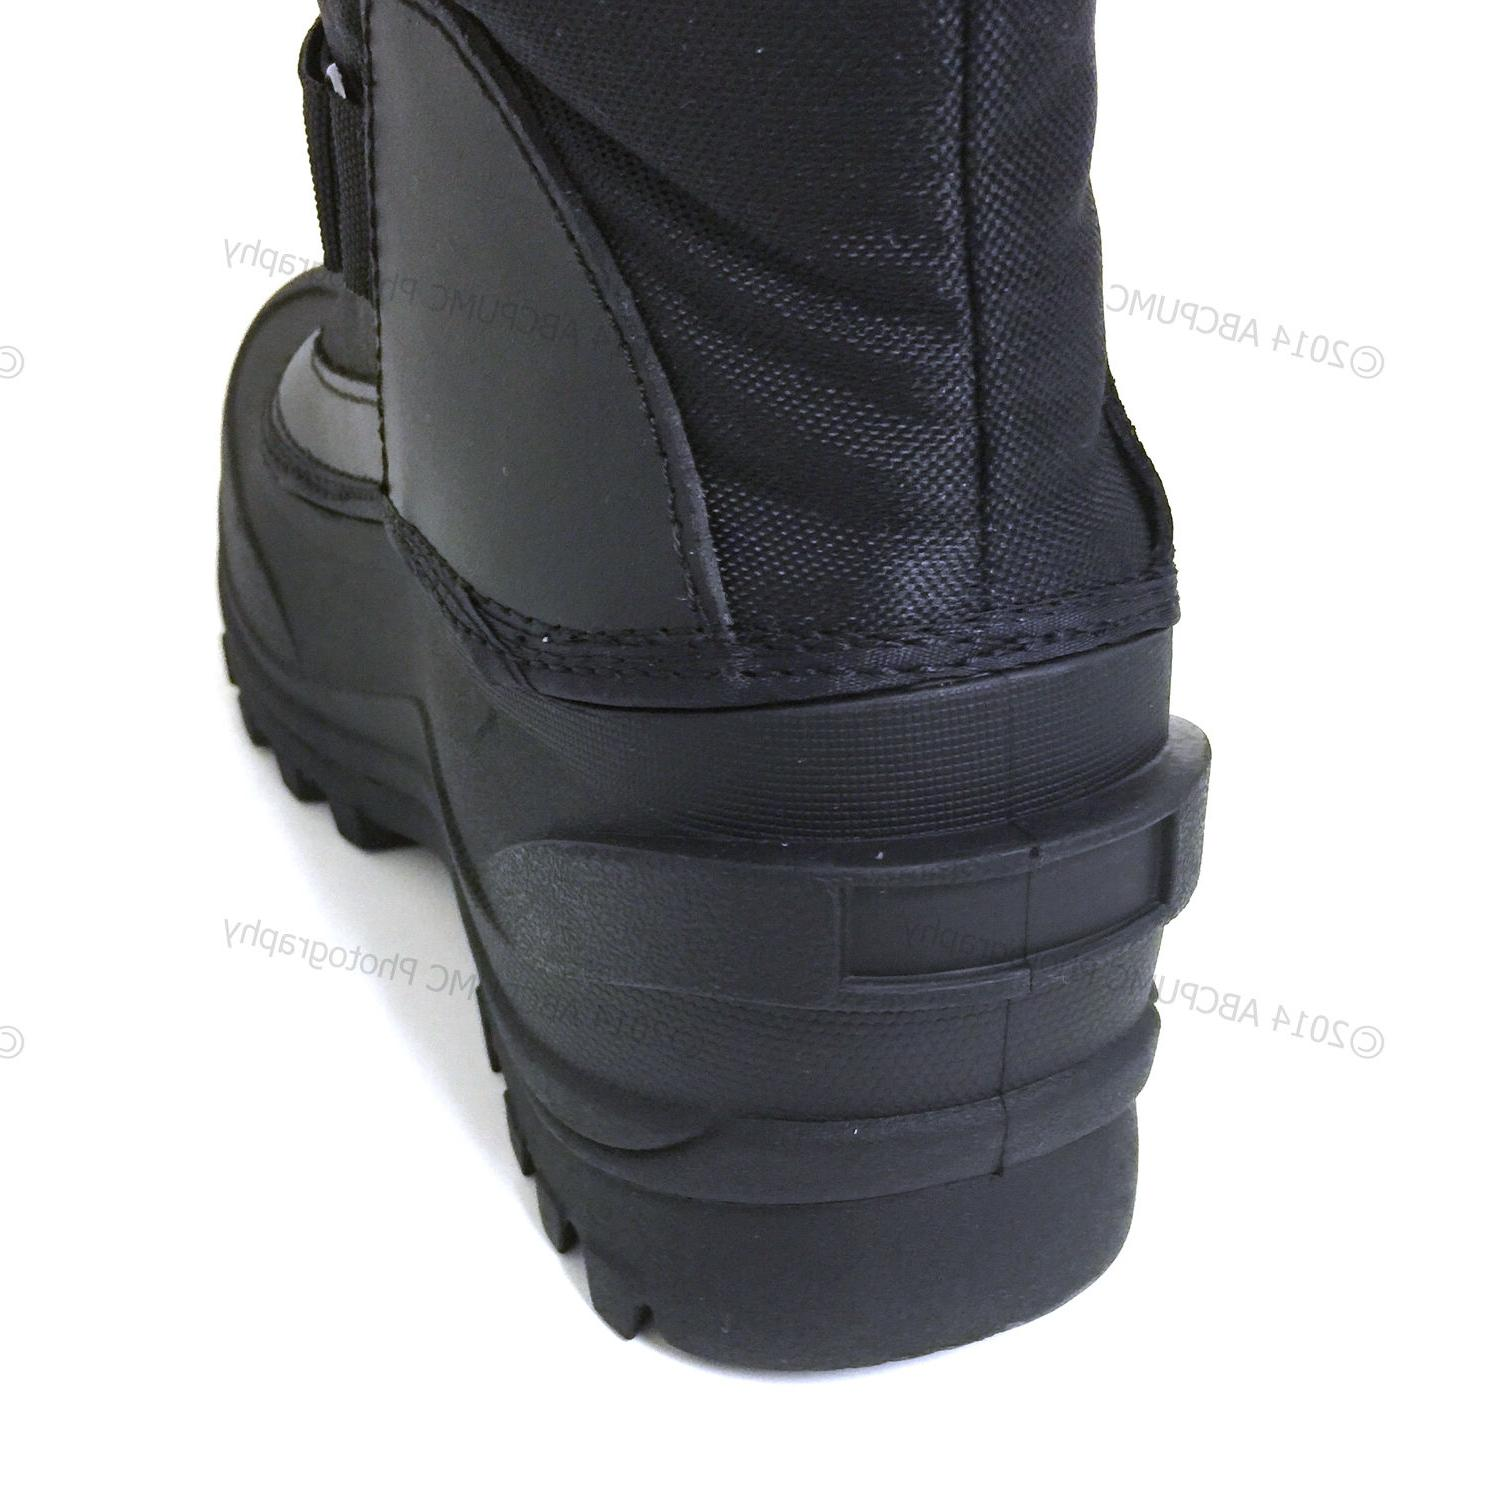 Brand New Boots Insulated Waterproof Thermolite